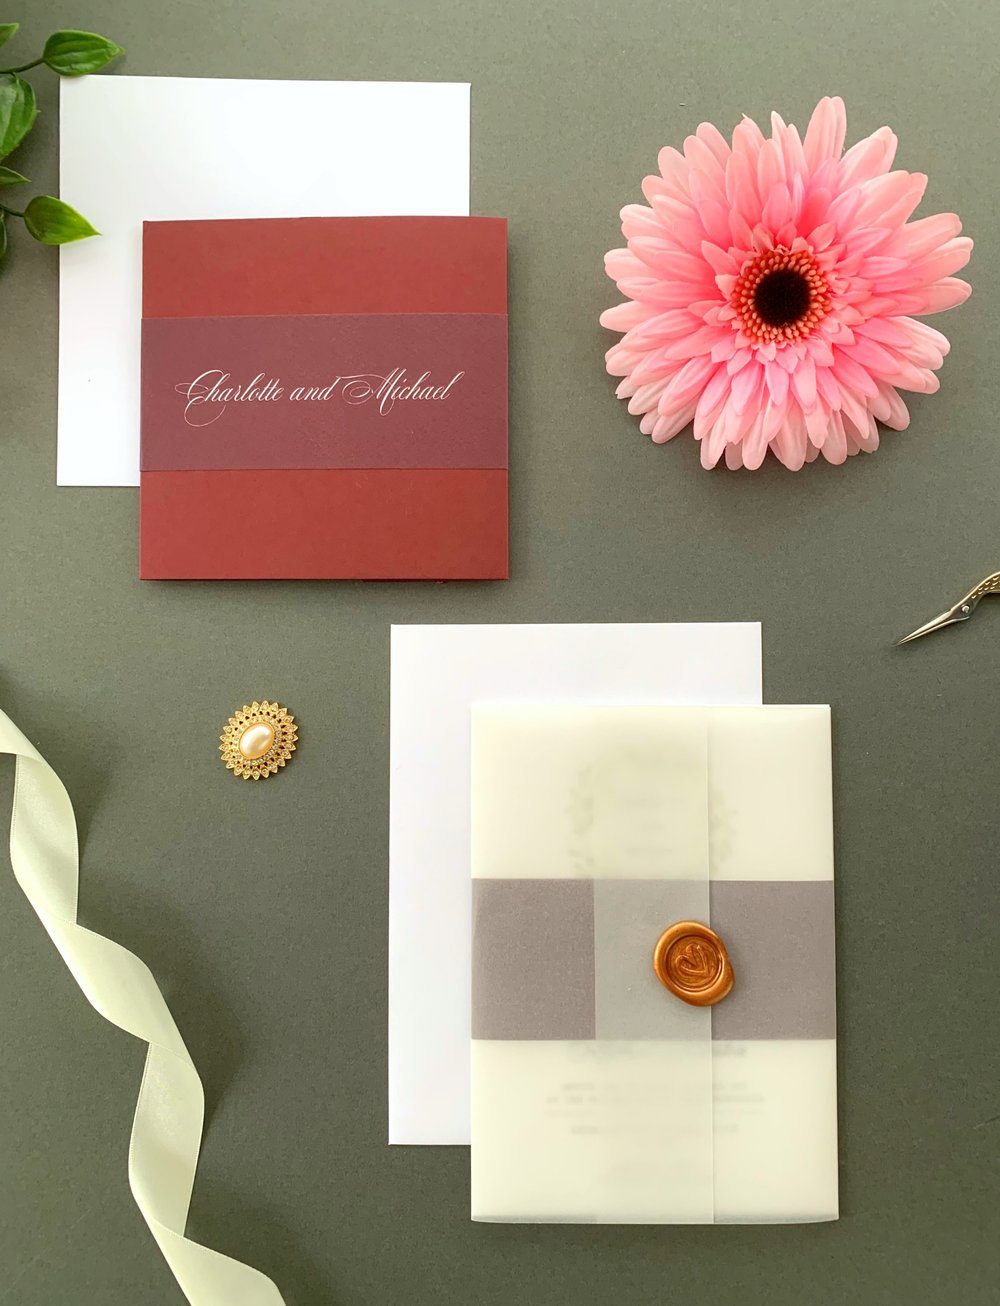 Oxford Pocketfold Suite with Paper Belly Band, Invitation Suite with Paper Belly Band, Vellum Jacket and Copper Wax Seal